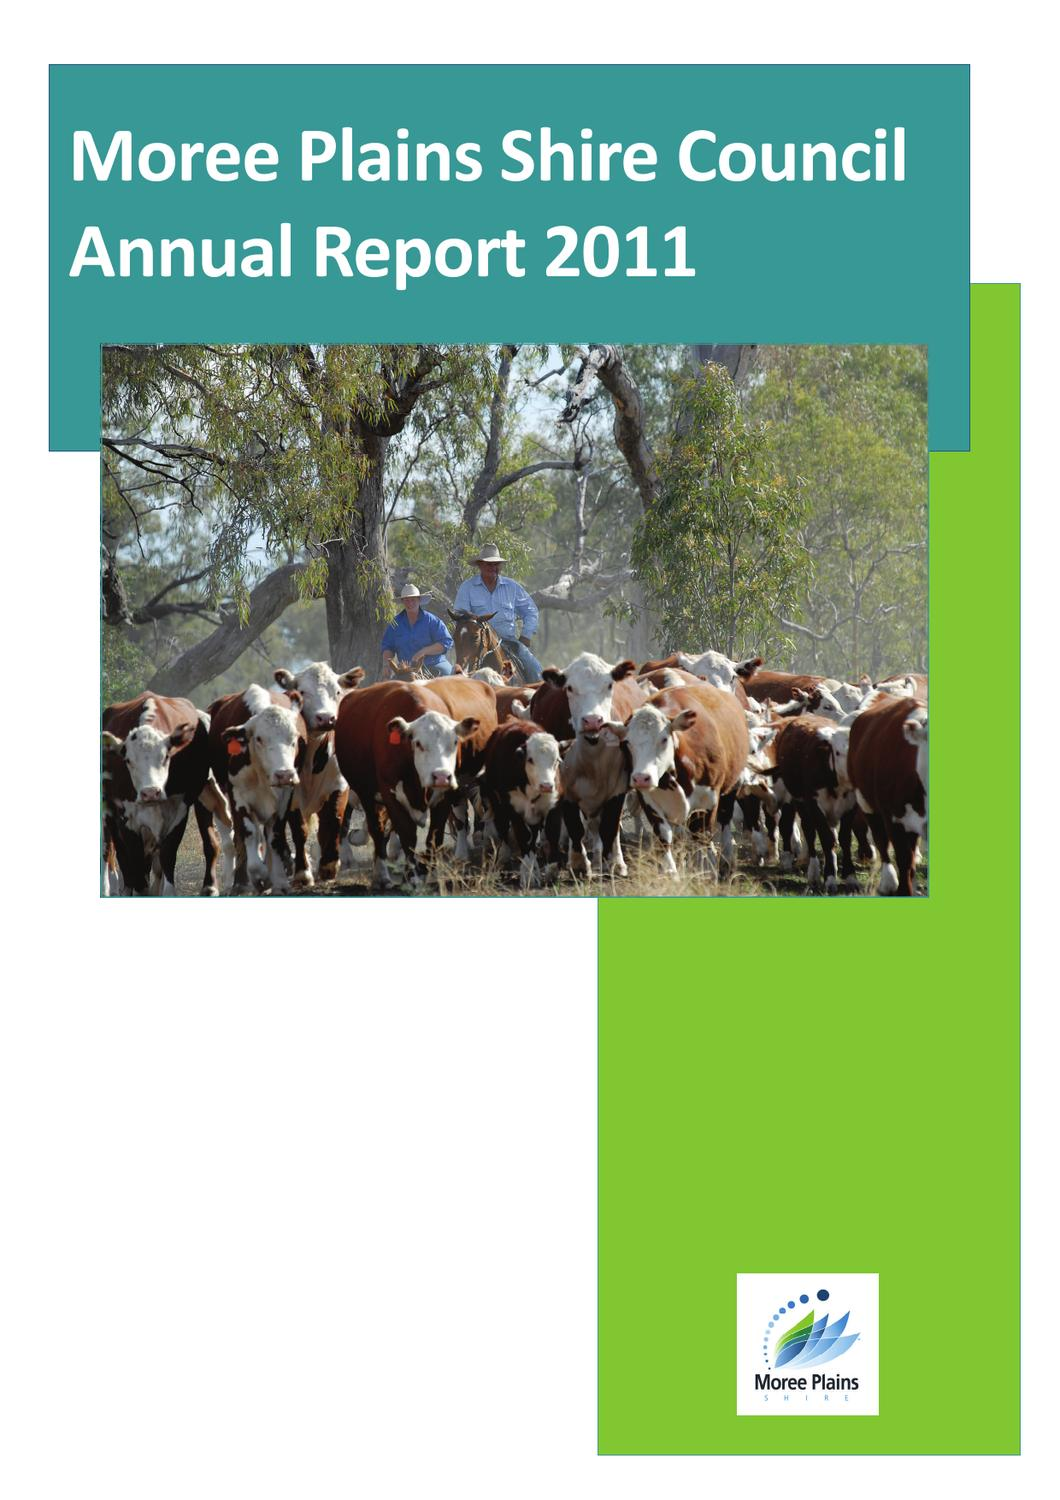 Moree Plains Shire Council Annual Report 2011 by Moree